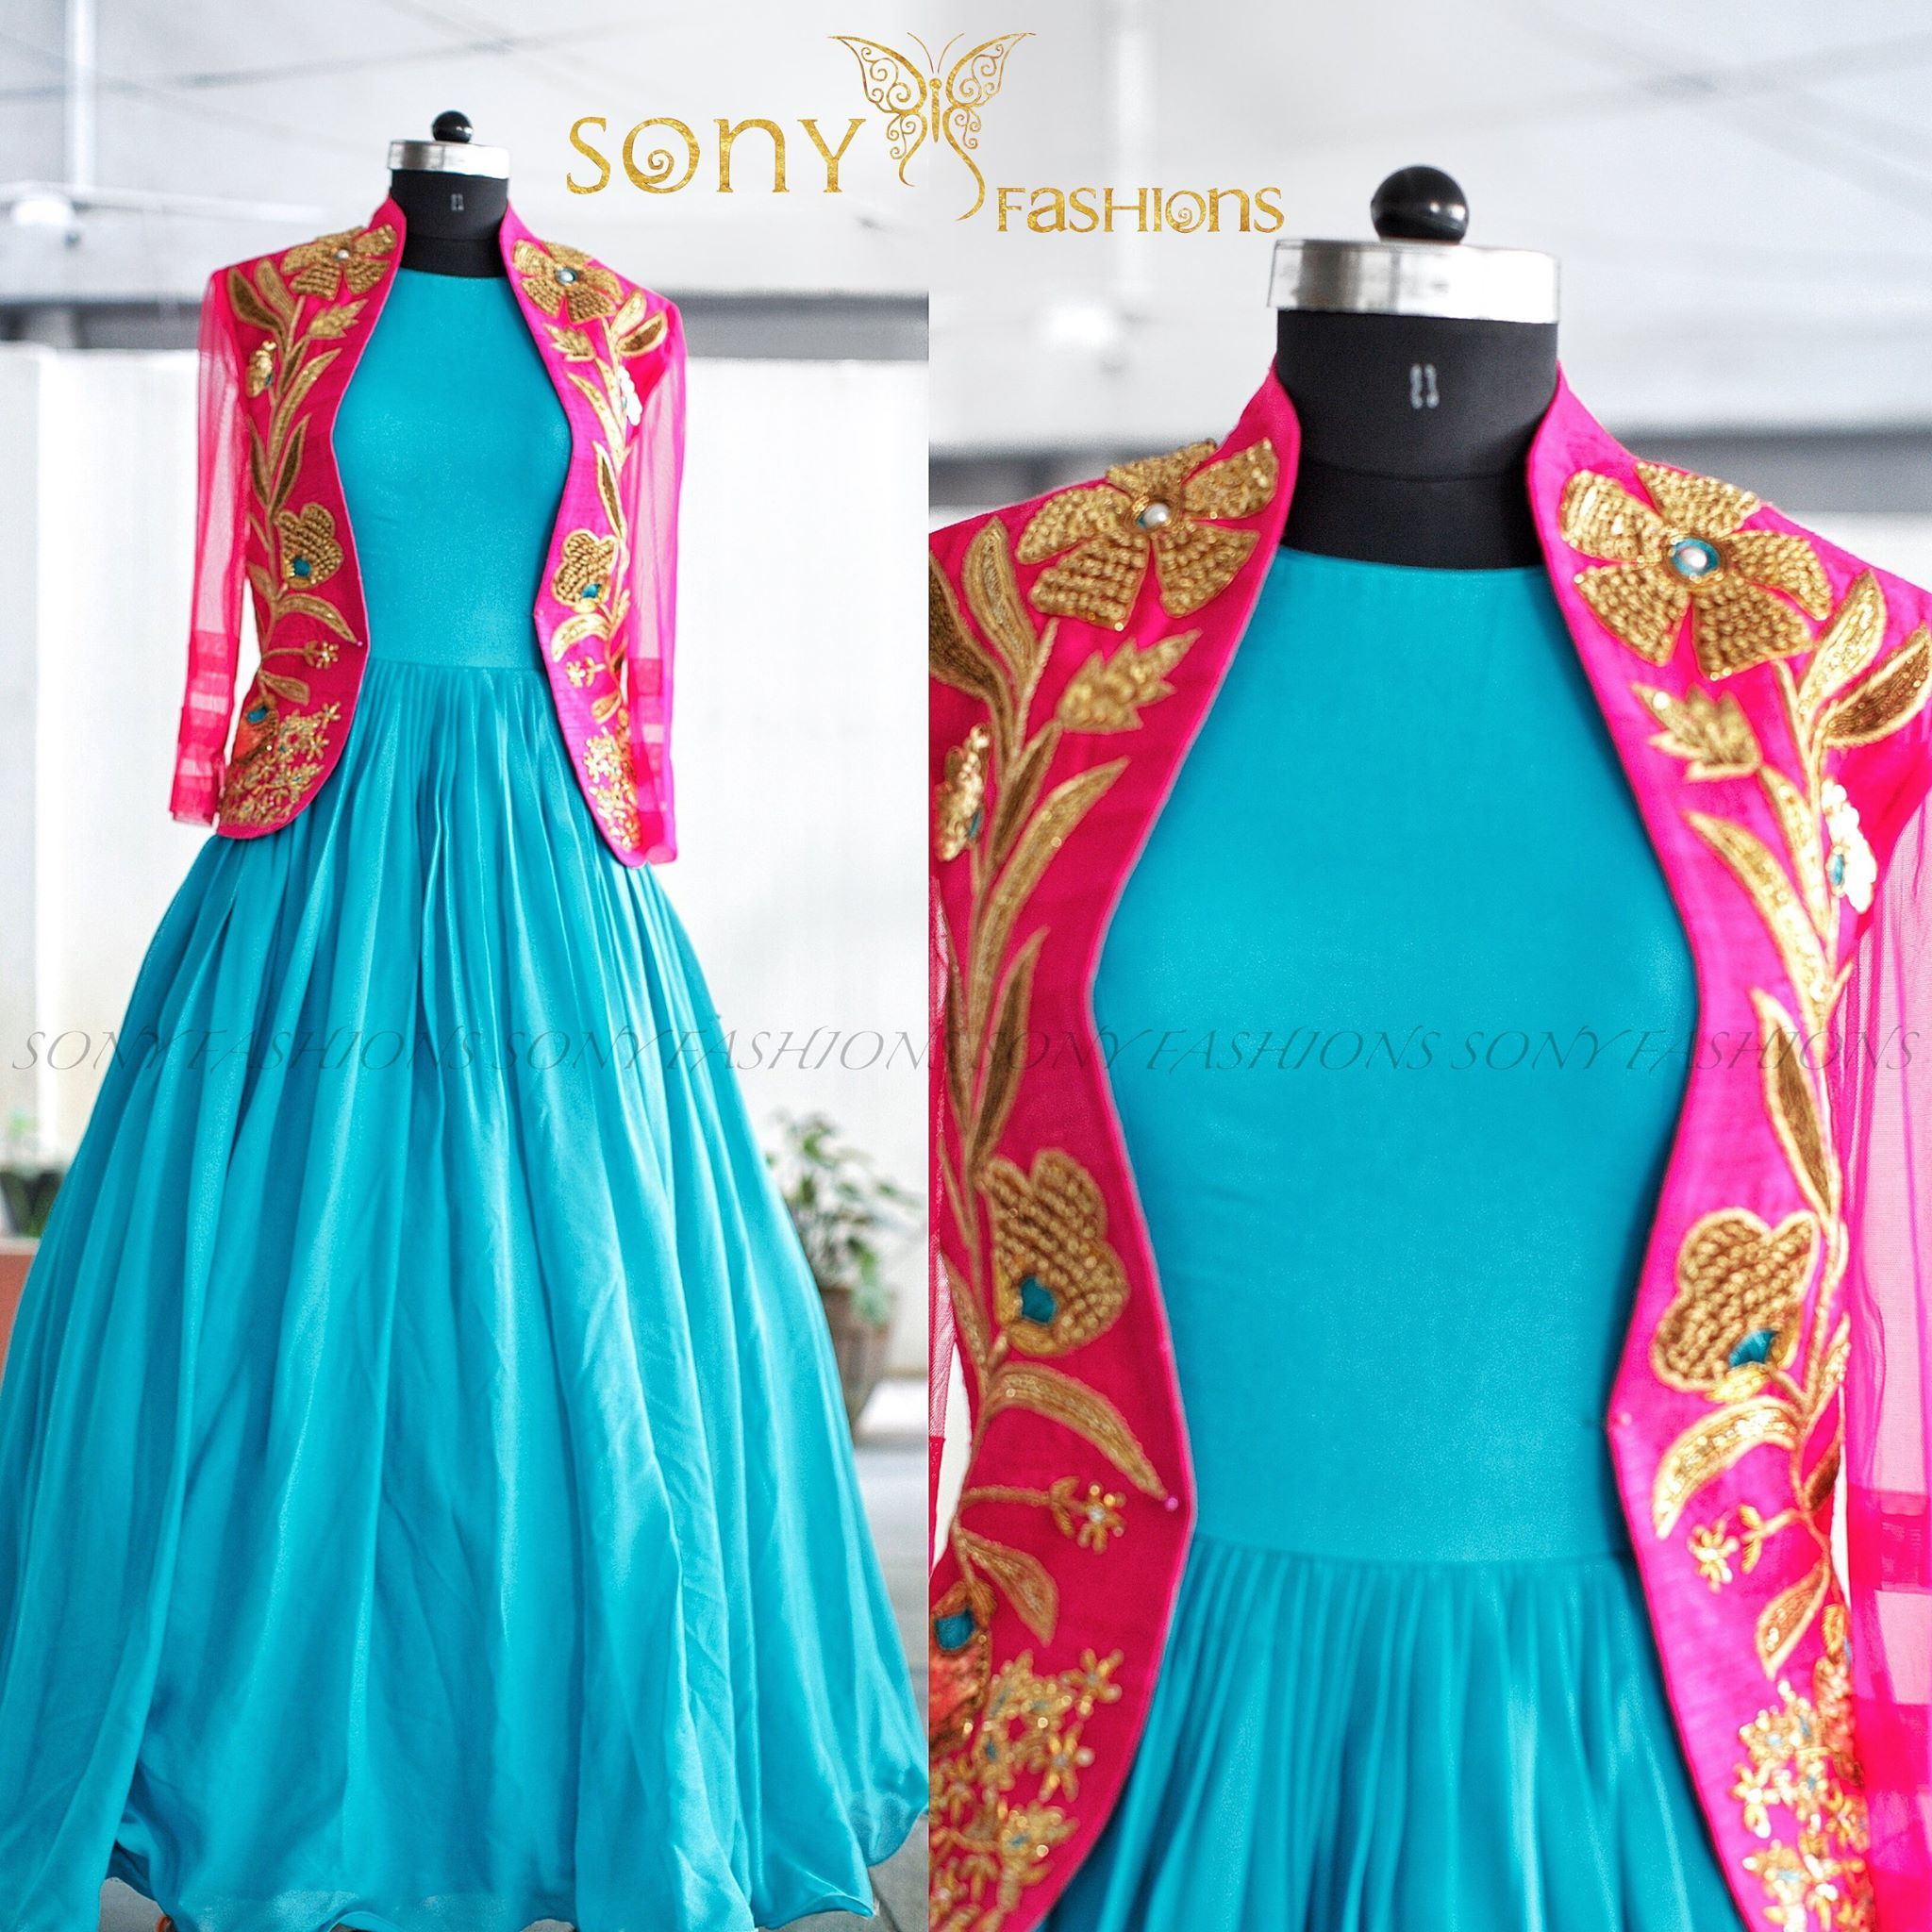 Beauty of bundles on threads that come together and create Pure Magic. Beautiful powder blue floor length gown and pink color over coat with hand embroidery gold thread work.